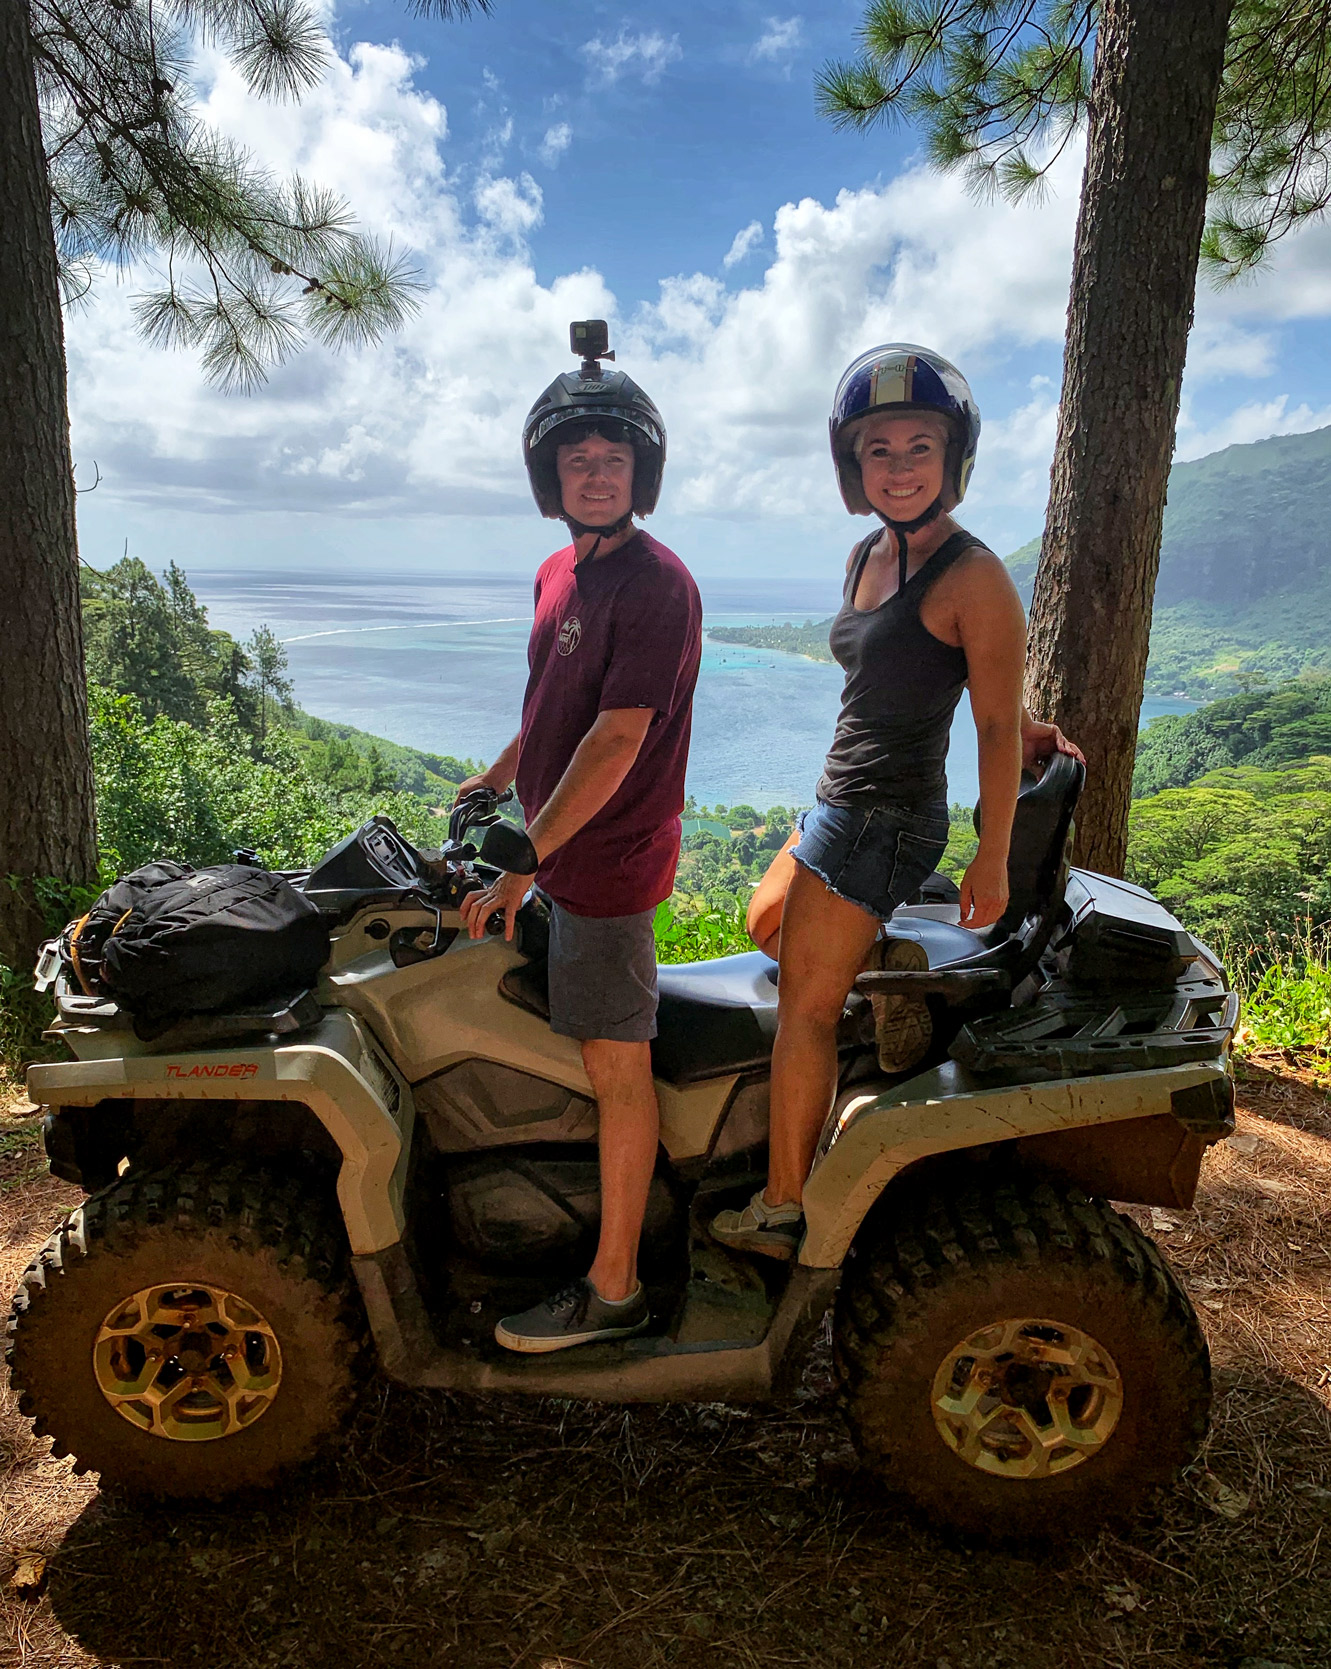 travel blogger Amanda on an ATV with Albert Tours in Moorea on the way up to Magic Mountain in Moorea, French Polynesia.